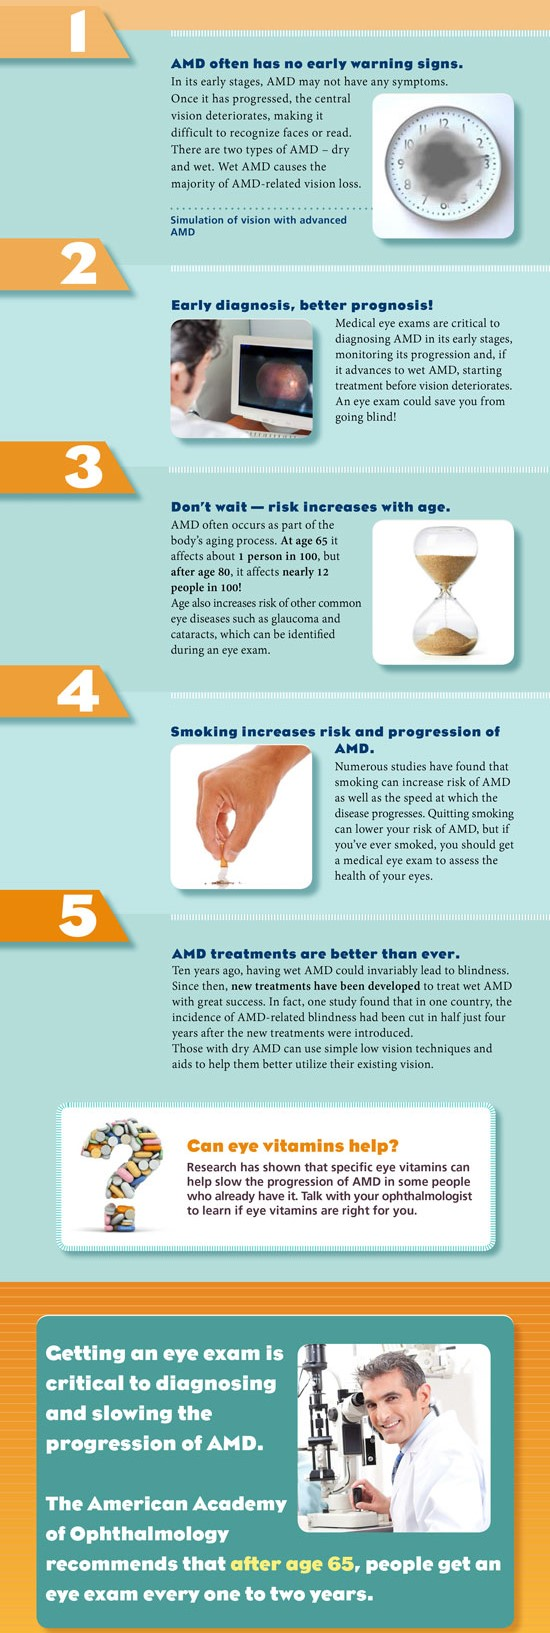 Five things every senior should know to save their sight from AMD-related vision loss